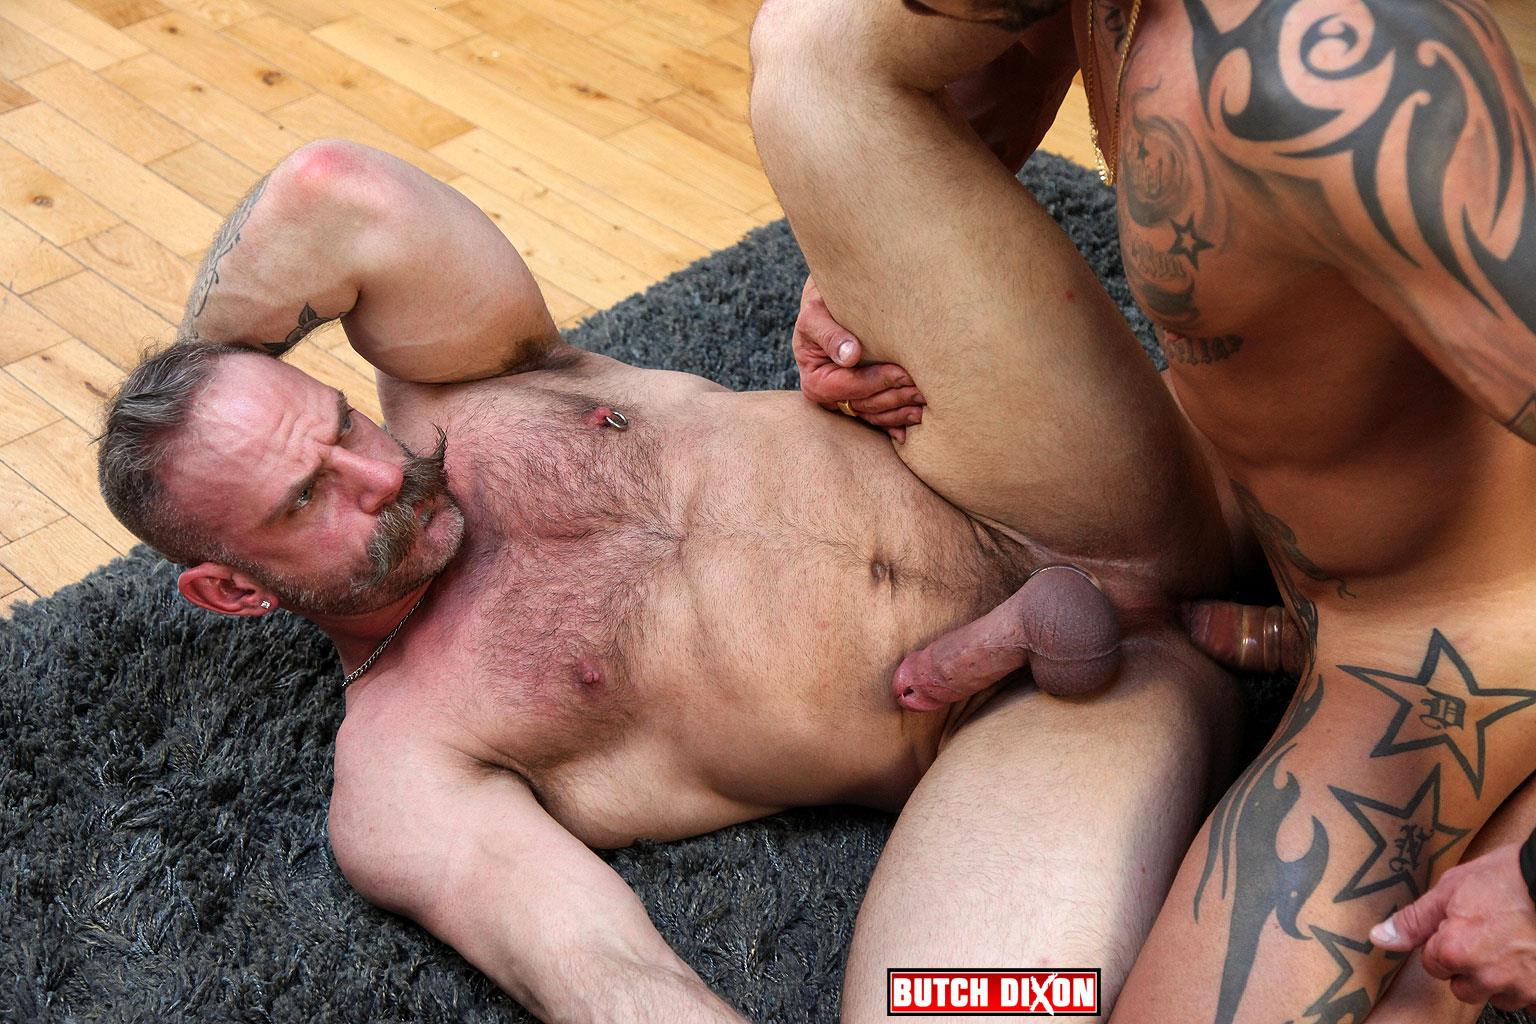 Butch-Dixon-Samuel-Colt-and-Frank-Valencia-Hairy-Muscle-Daddy-Getting-Fucked-By-Latino-Cock-Amateur-Gay-Porn-12 Happy Fathers Day: Hairy Muscle Daddy Samuel Colt Taking A Big Cock Up The Ass